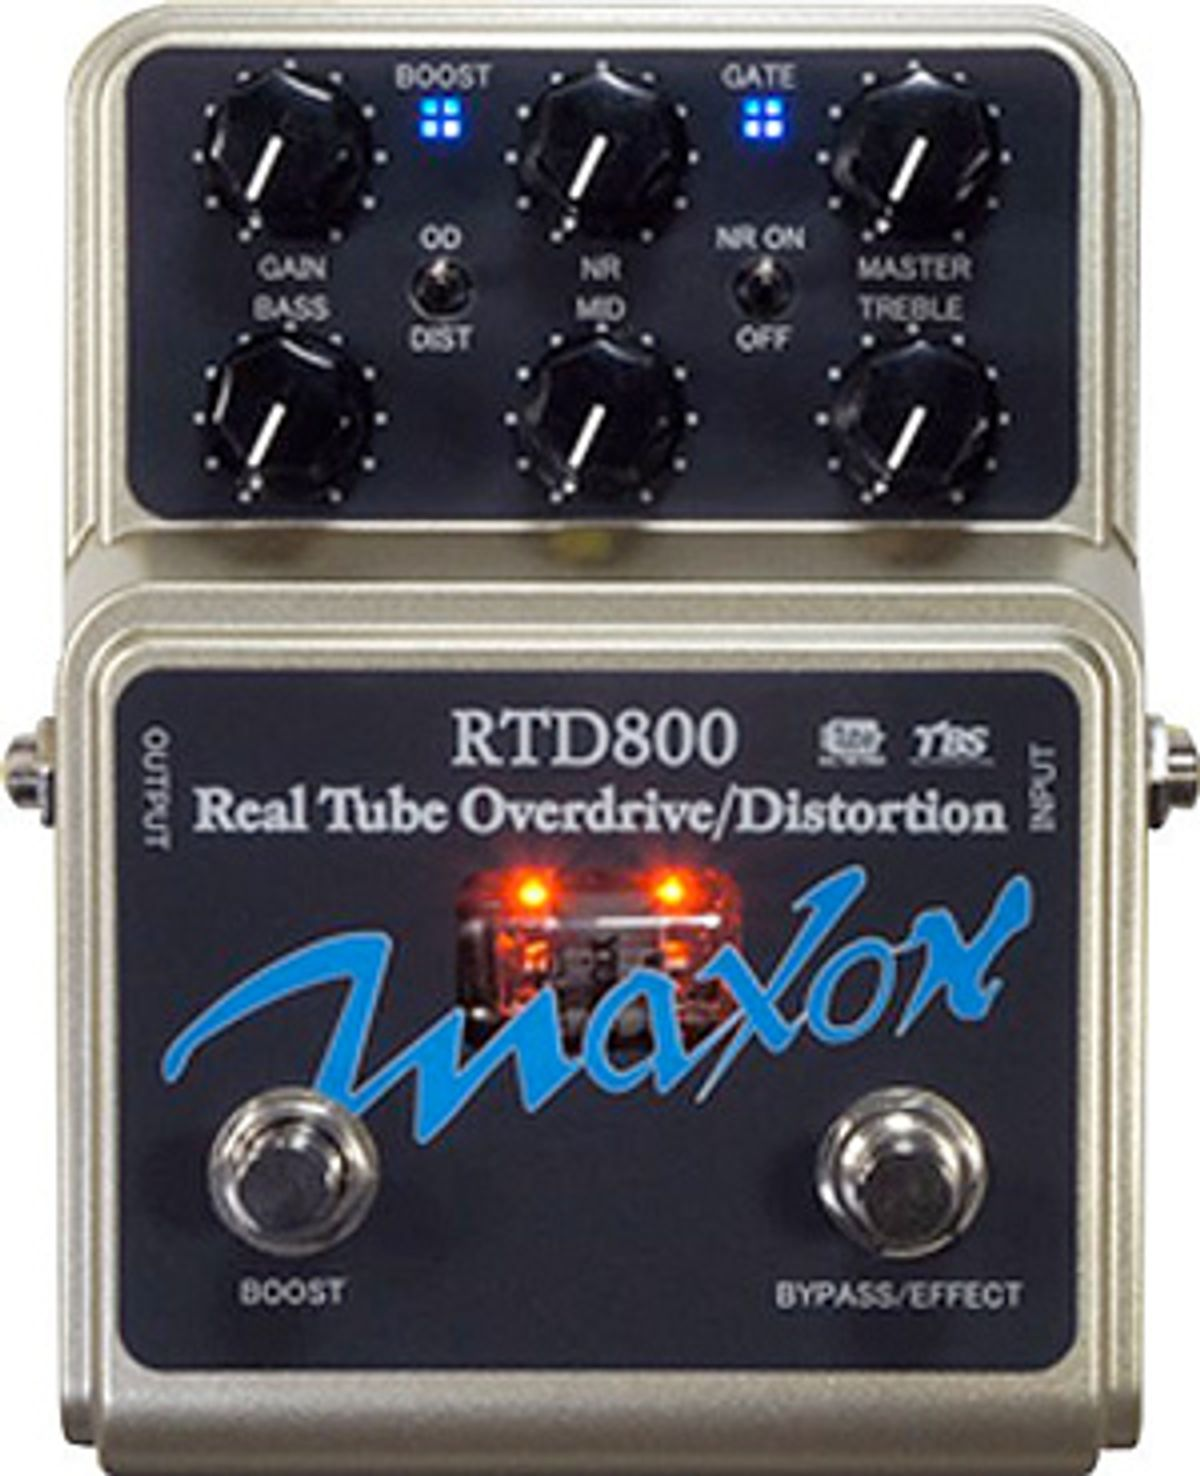 Maxon RTD800 Real Tube Overdrive/Distortion Pedal Review